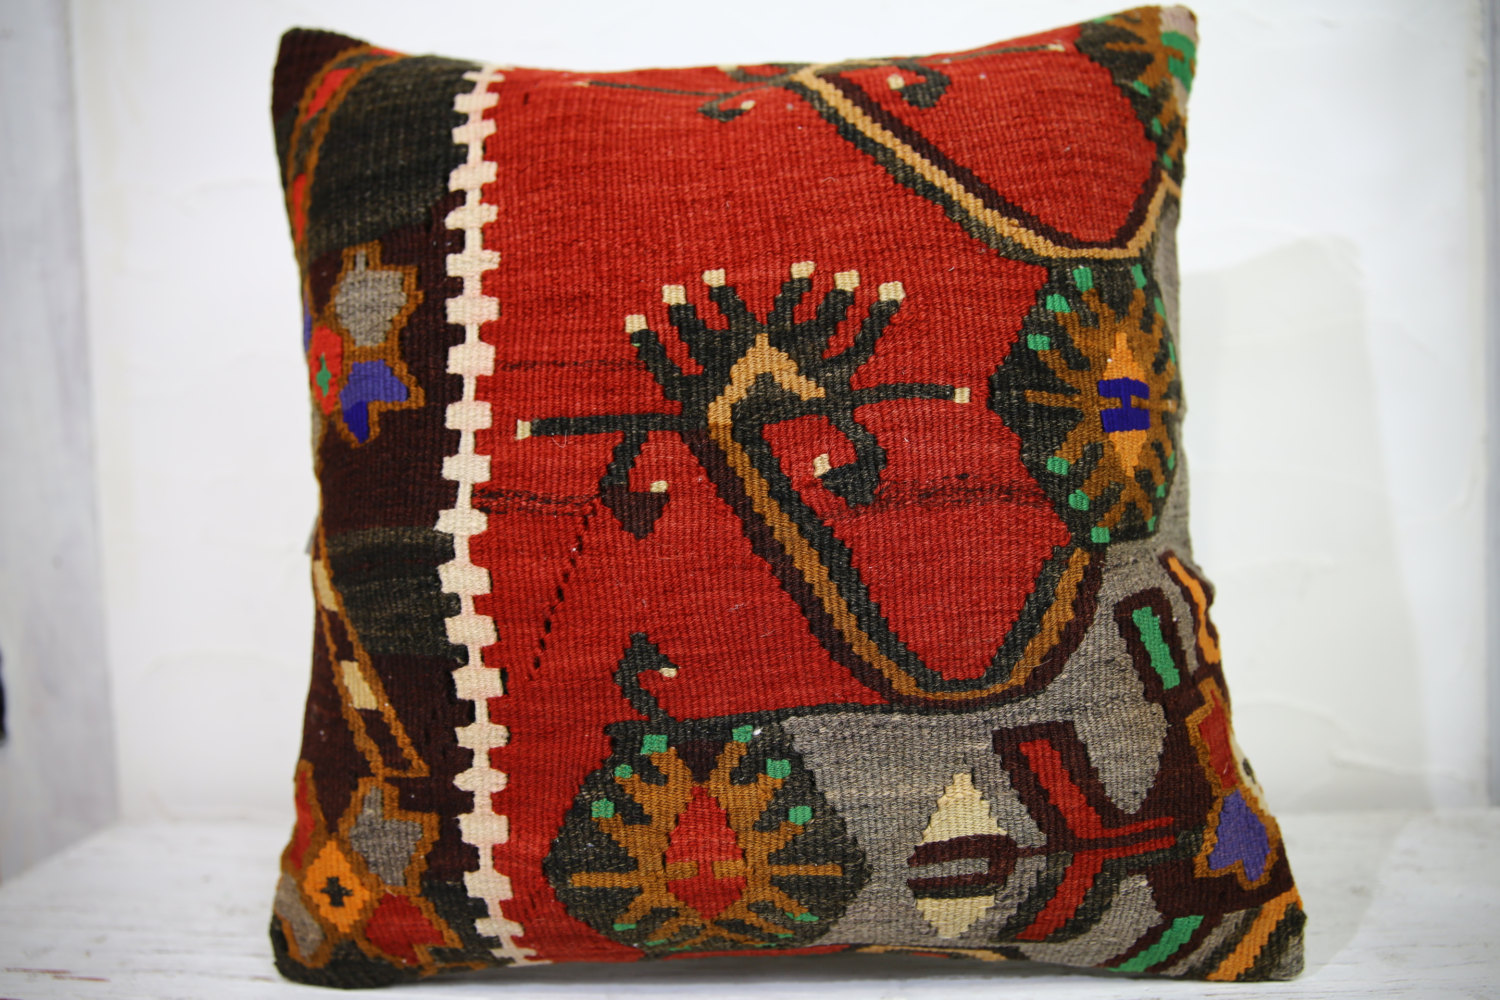 Kilim Pillows | 18x18 | Decorative Pillows | 1017 | Accent Pillows,throw pillows